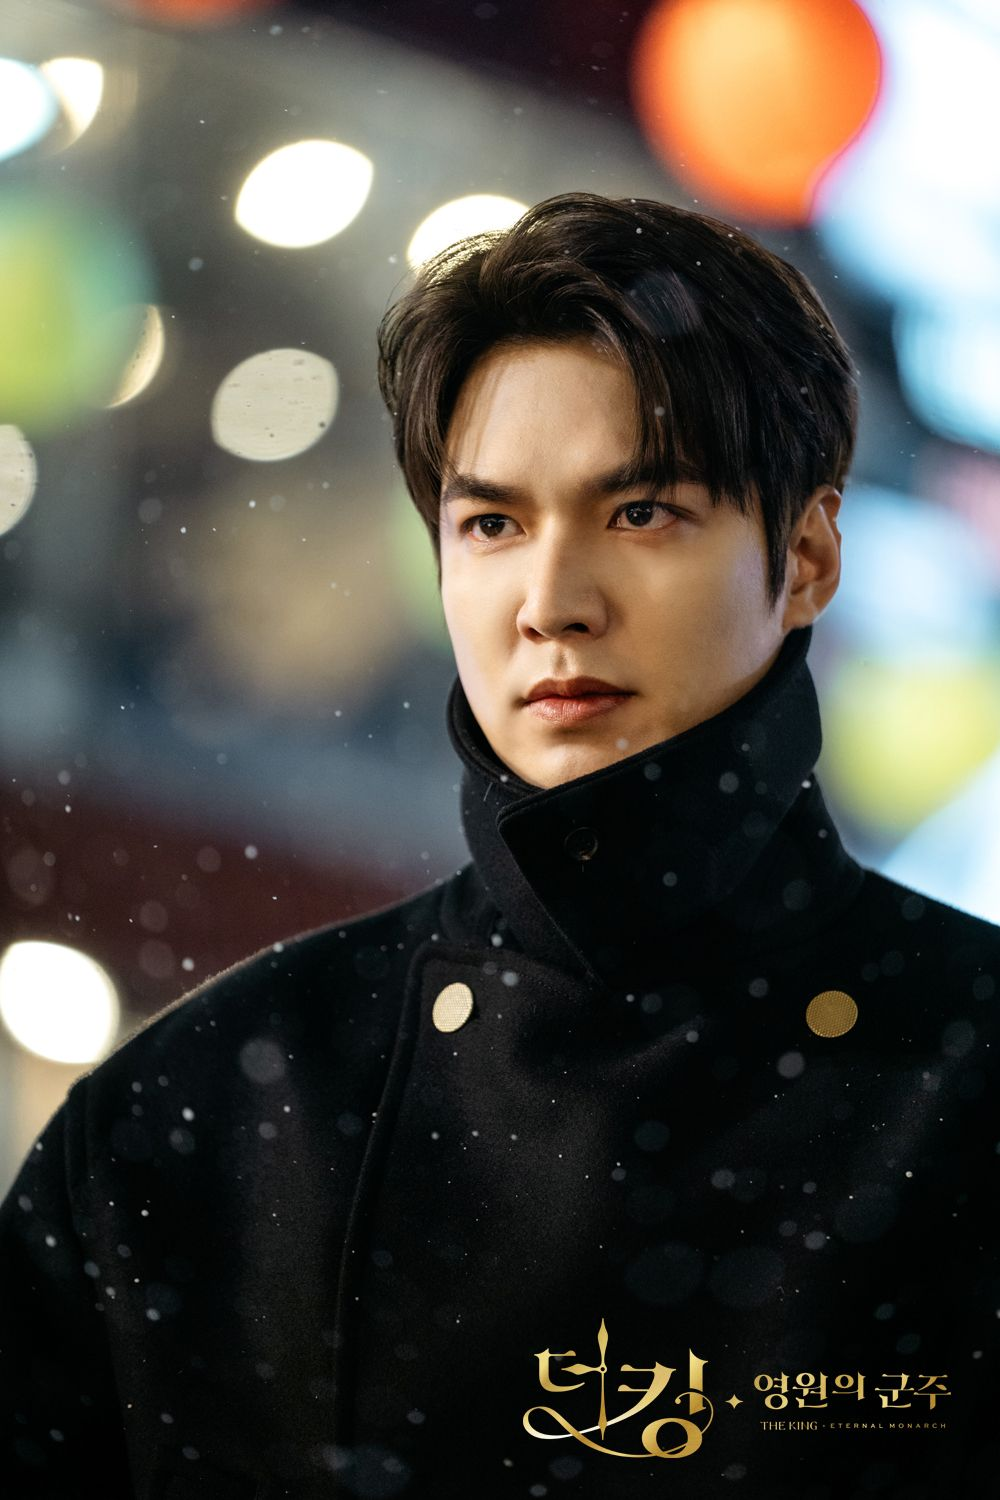 The King Eternal Monarch Ep 1 Sub Indo : eternal, monarch, King:, Eternal, Monarch, Drama, Ideas, Dramas,